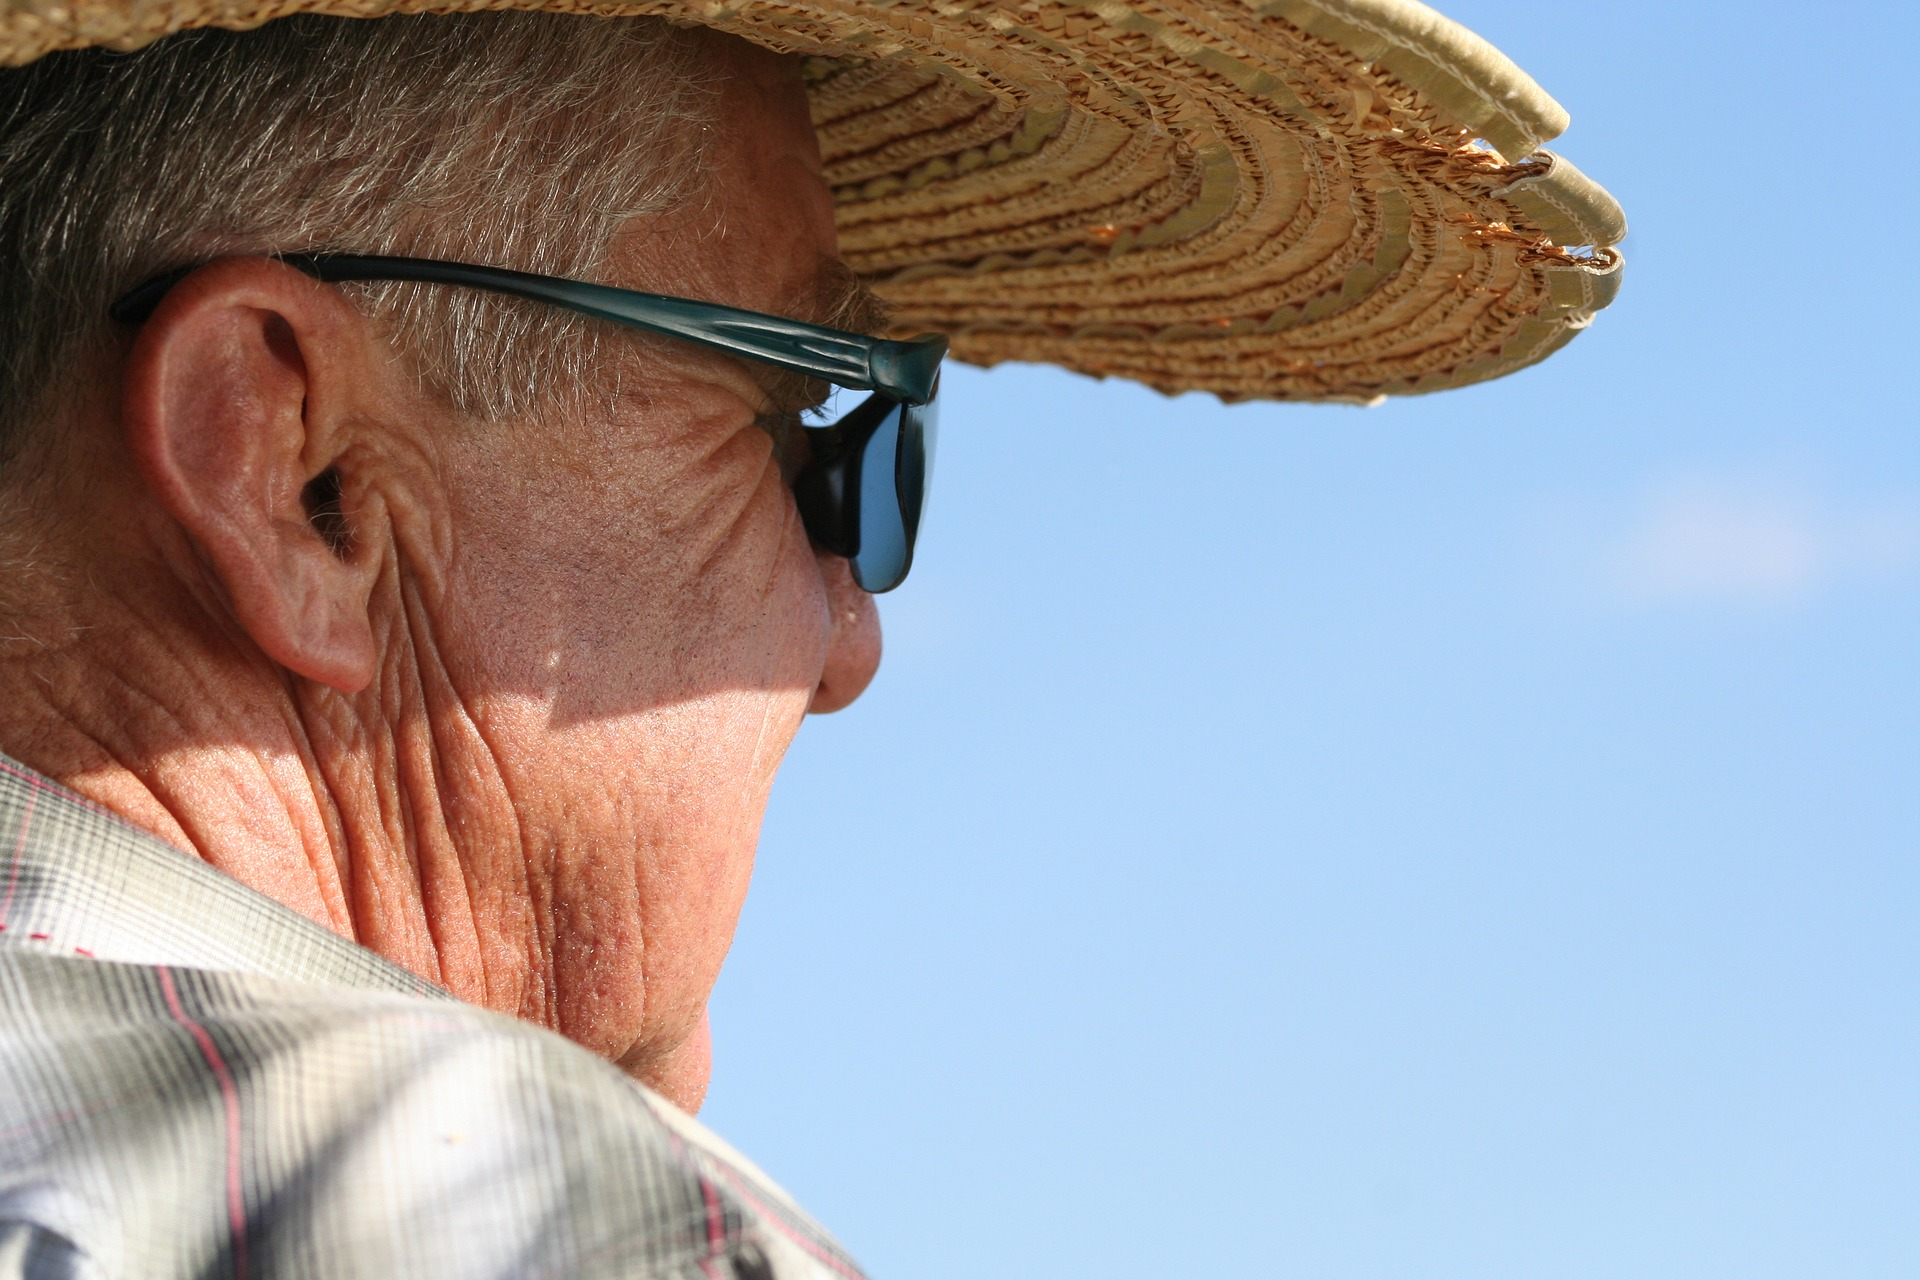 older man with hat and sunglasses